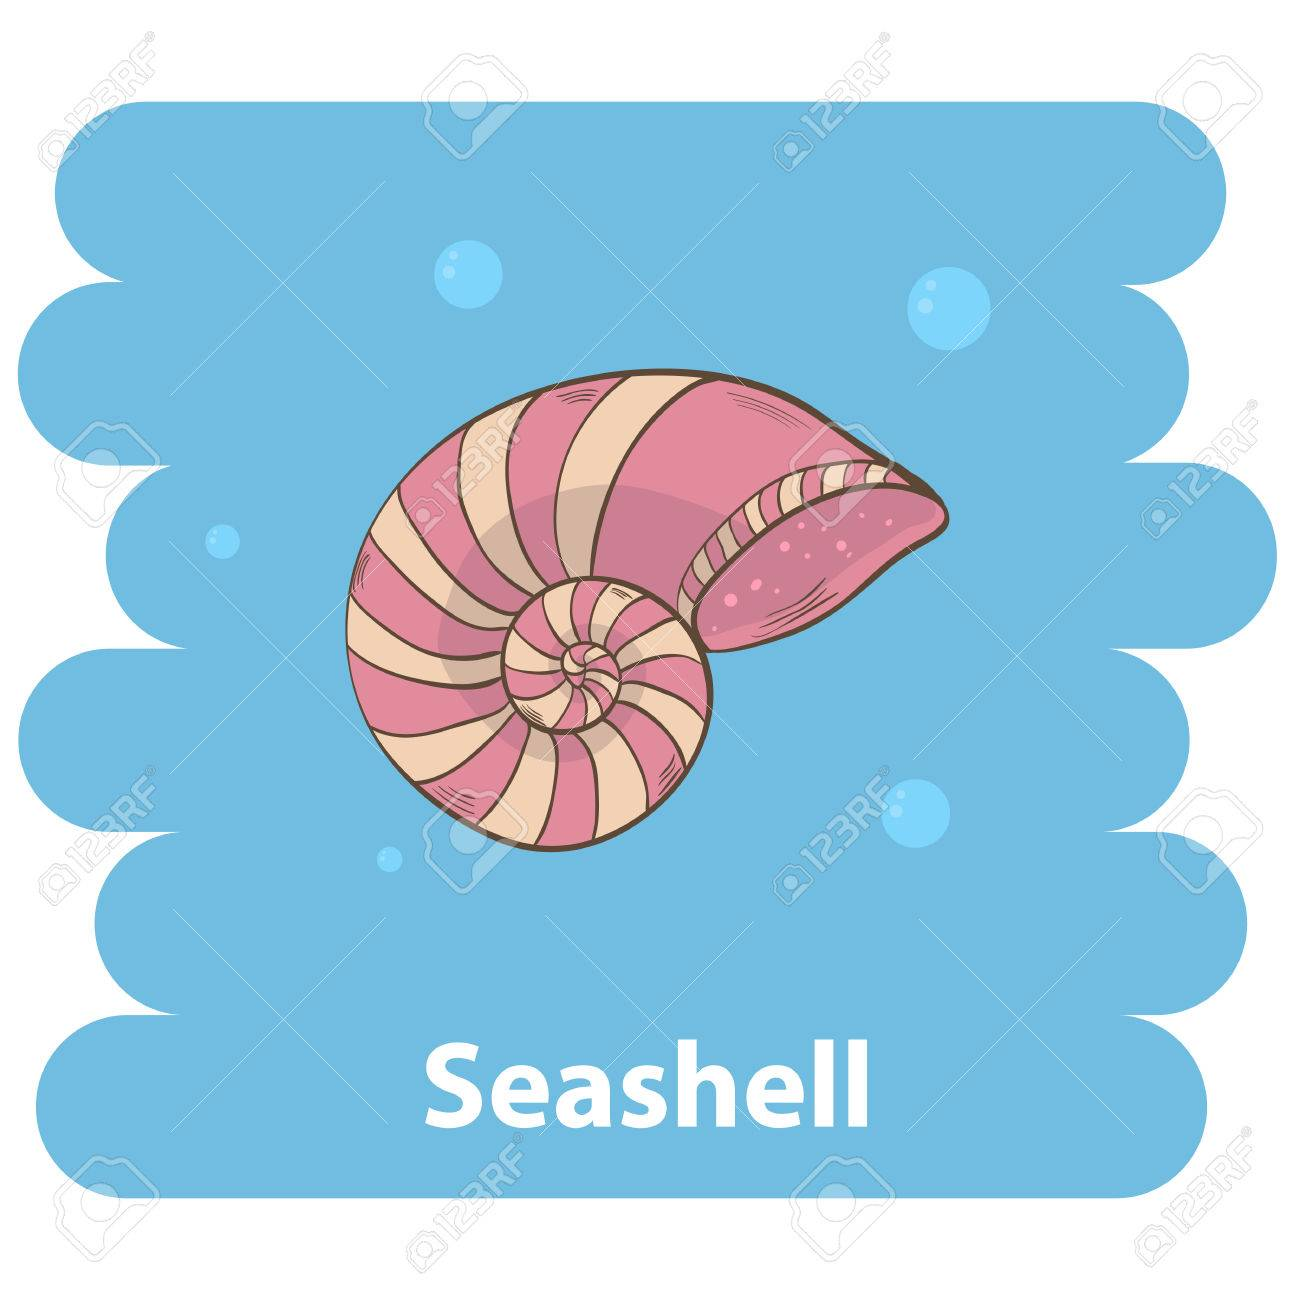 1300x1300 Seashell.cartoon Seashell Vector Illustration.cartoon Animal